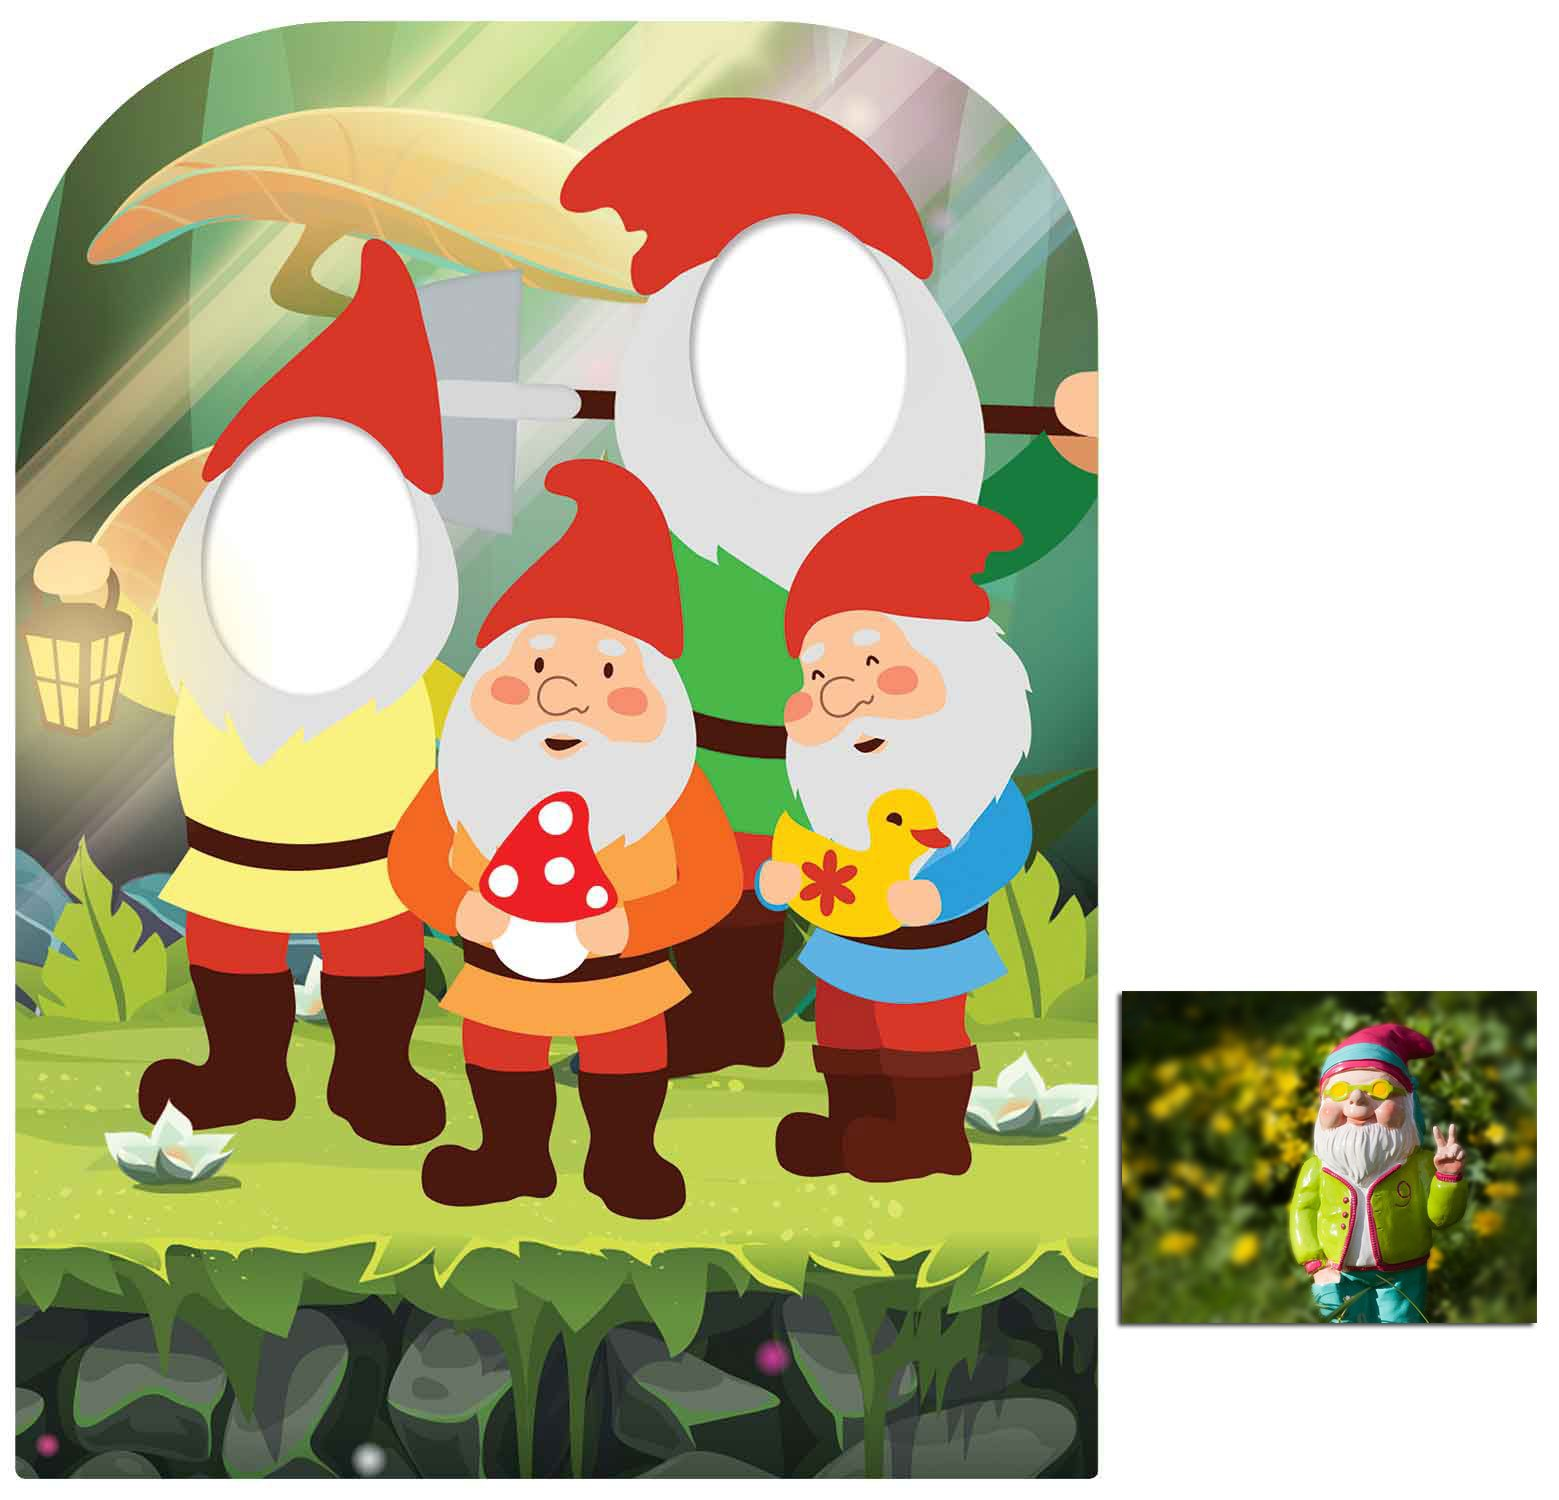 Fan Pack - The Spirit Of The Garden Gnomes Child Size Stand-in Cardboard Cutout - Includes 8x10 Star Photo